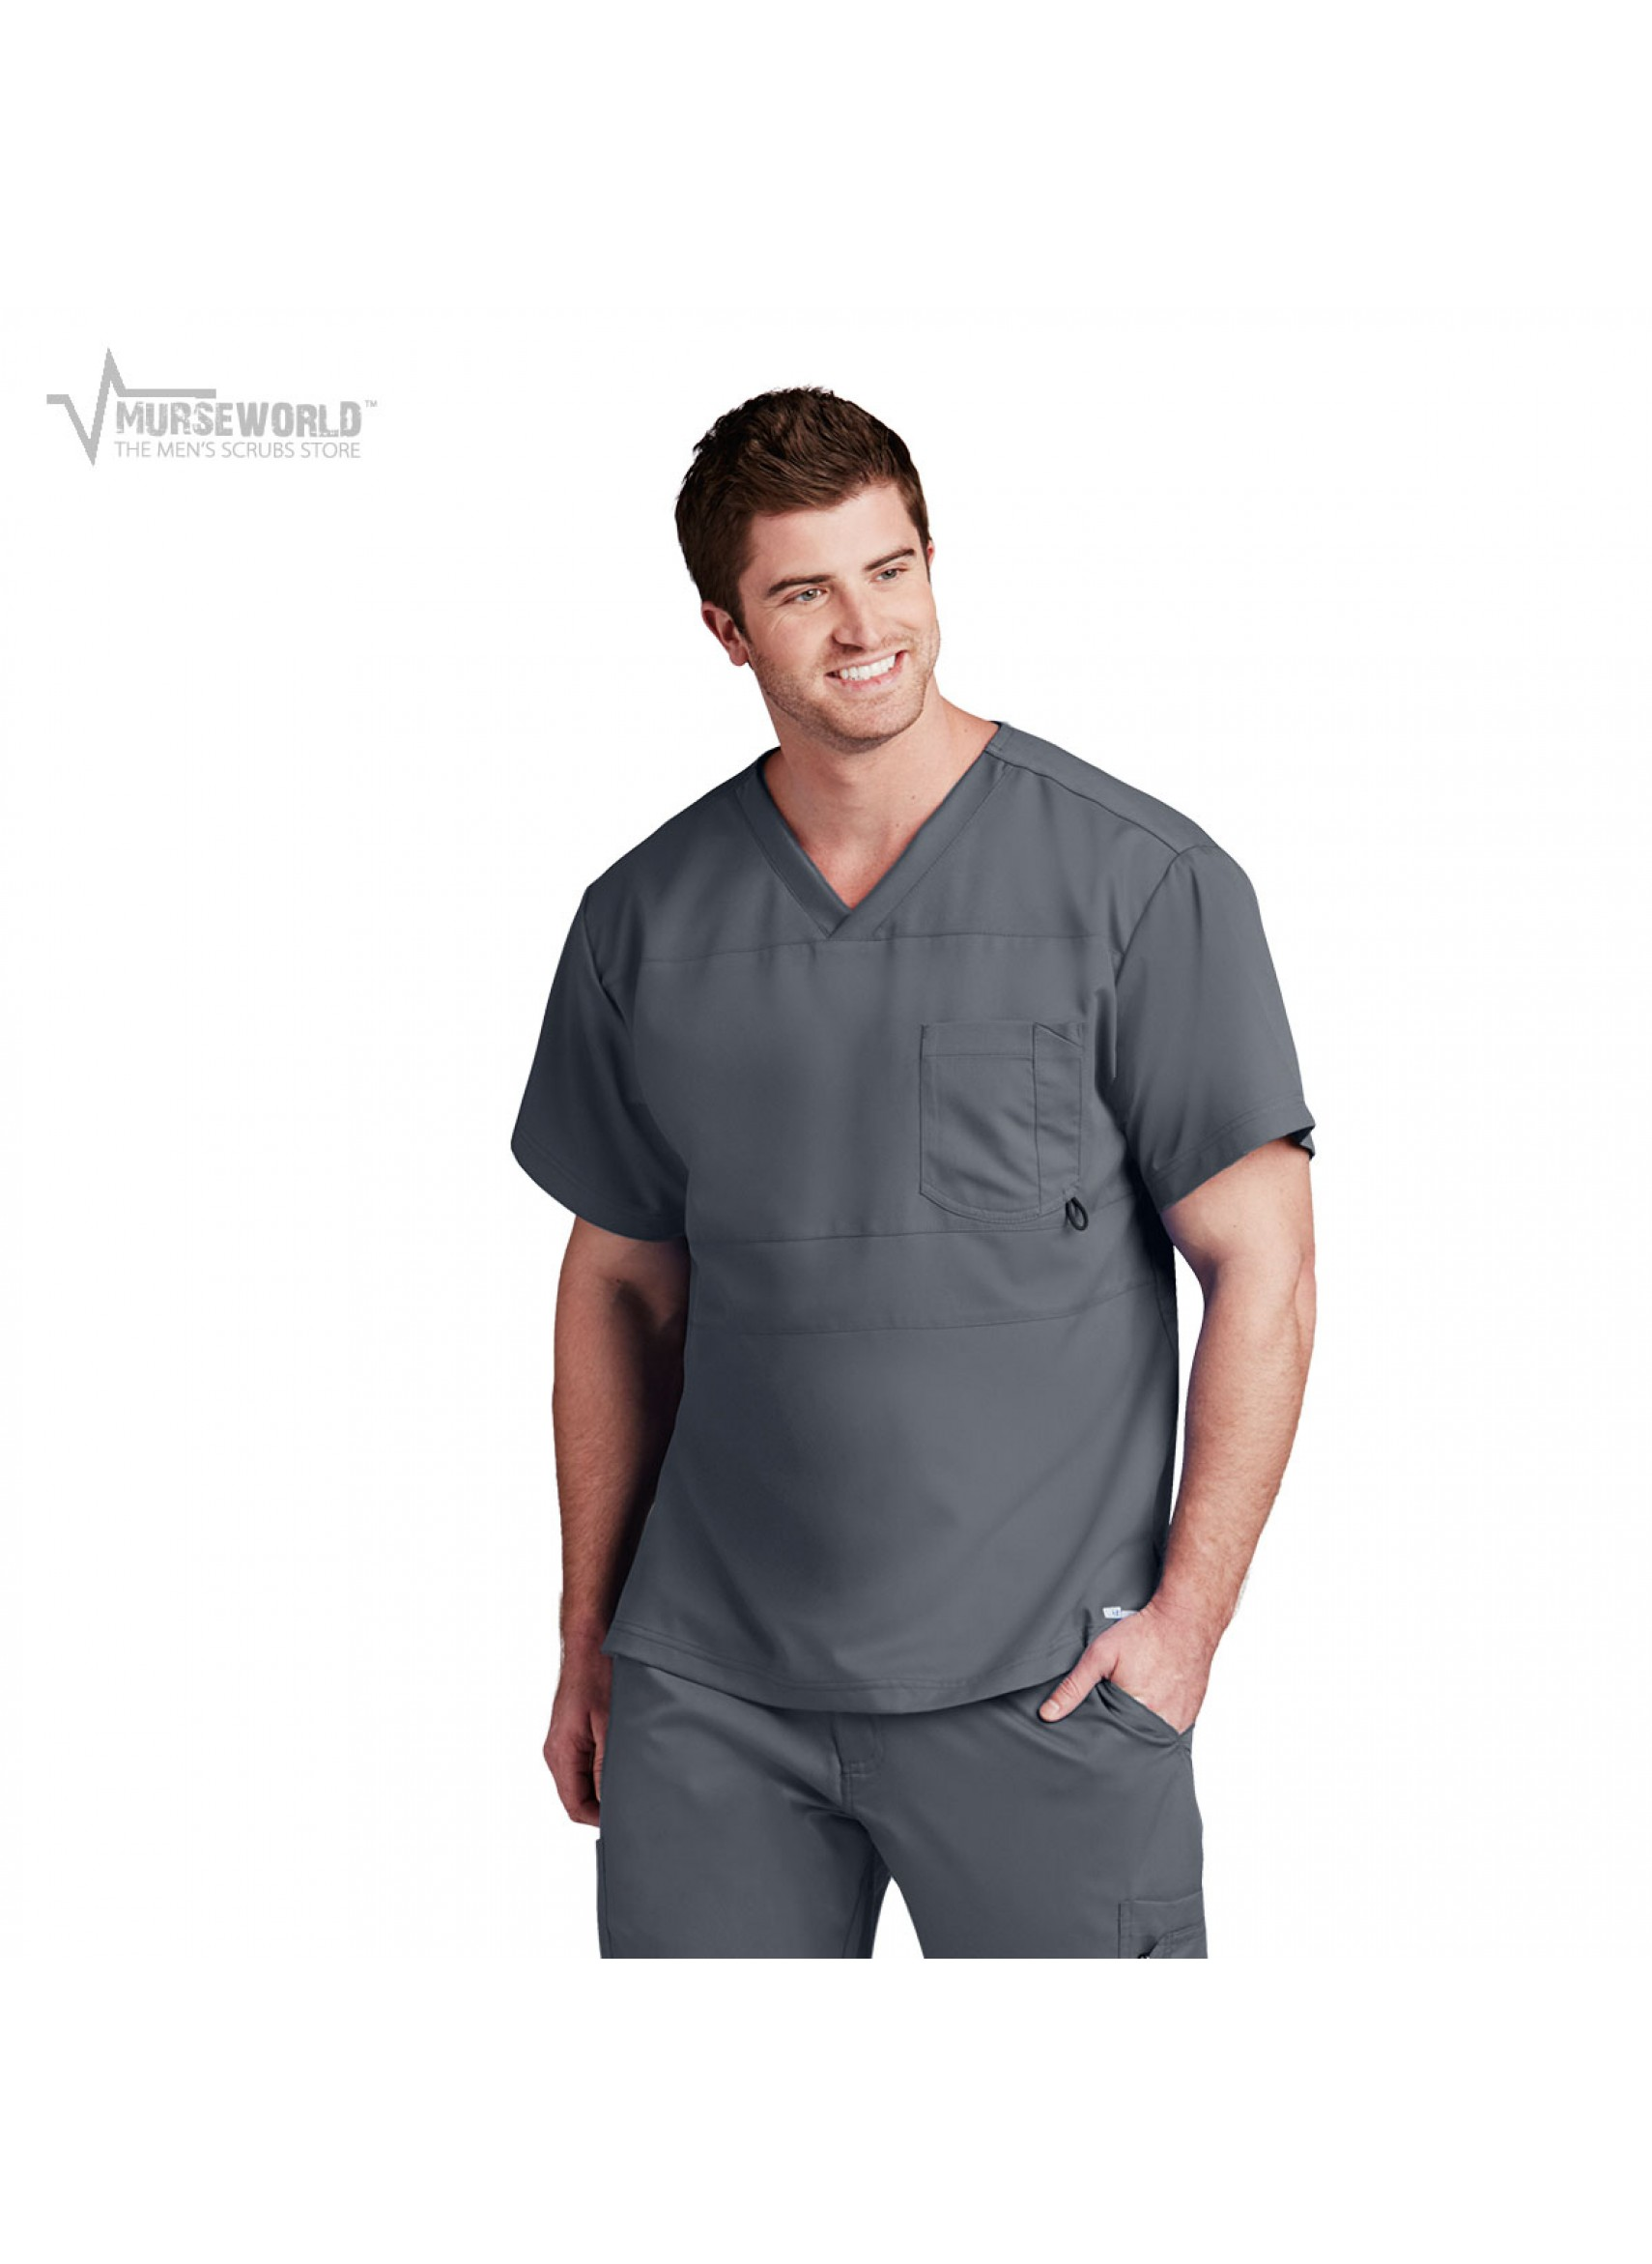 20% off all Cherokee Workwear with code WORK20 at checkout! Grey s Anatomy  Active Men s Panel Pieced Scrub Top ... 03360c3cc685